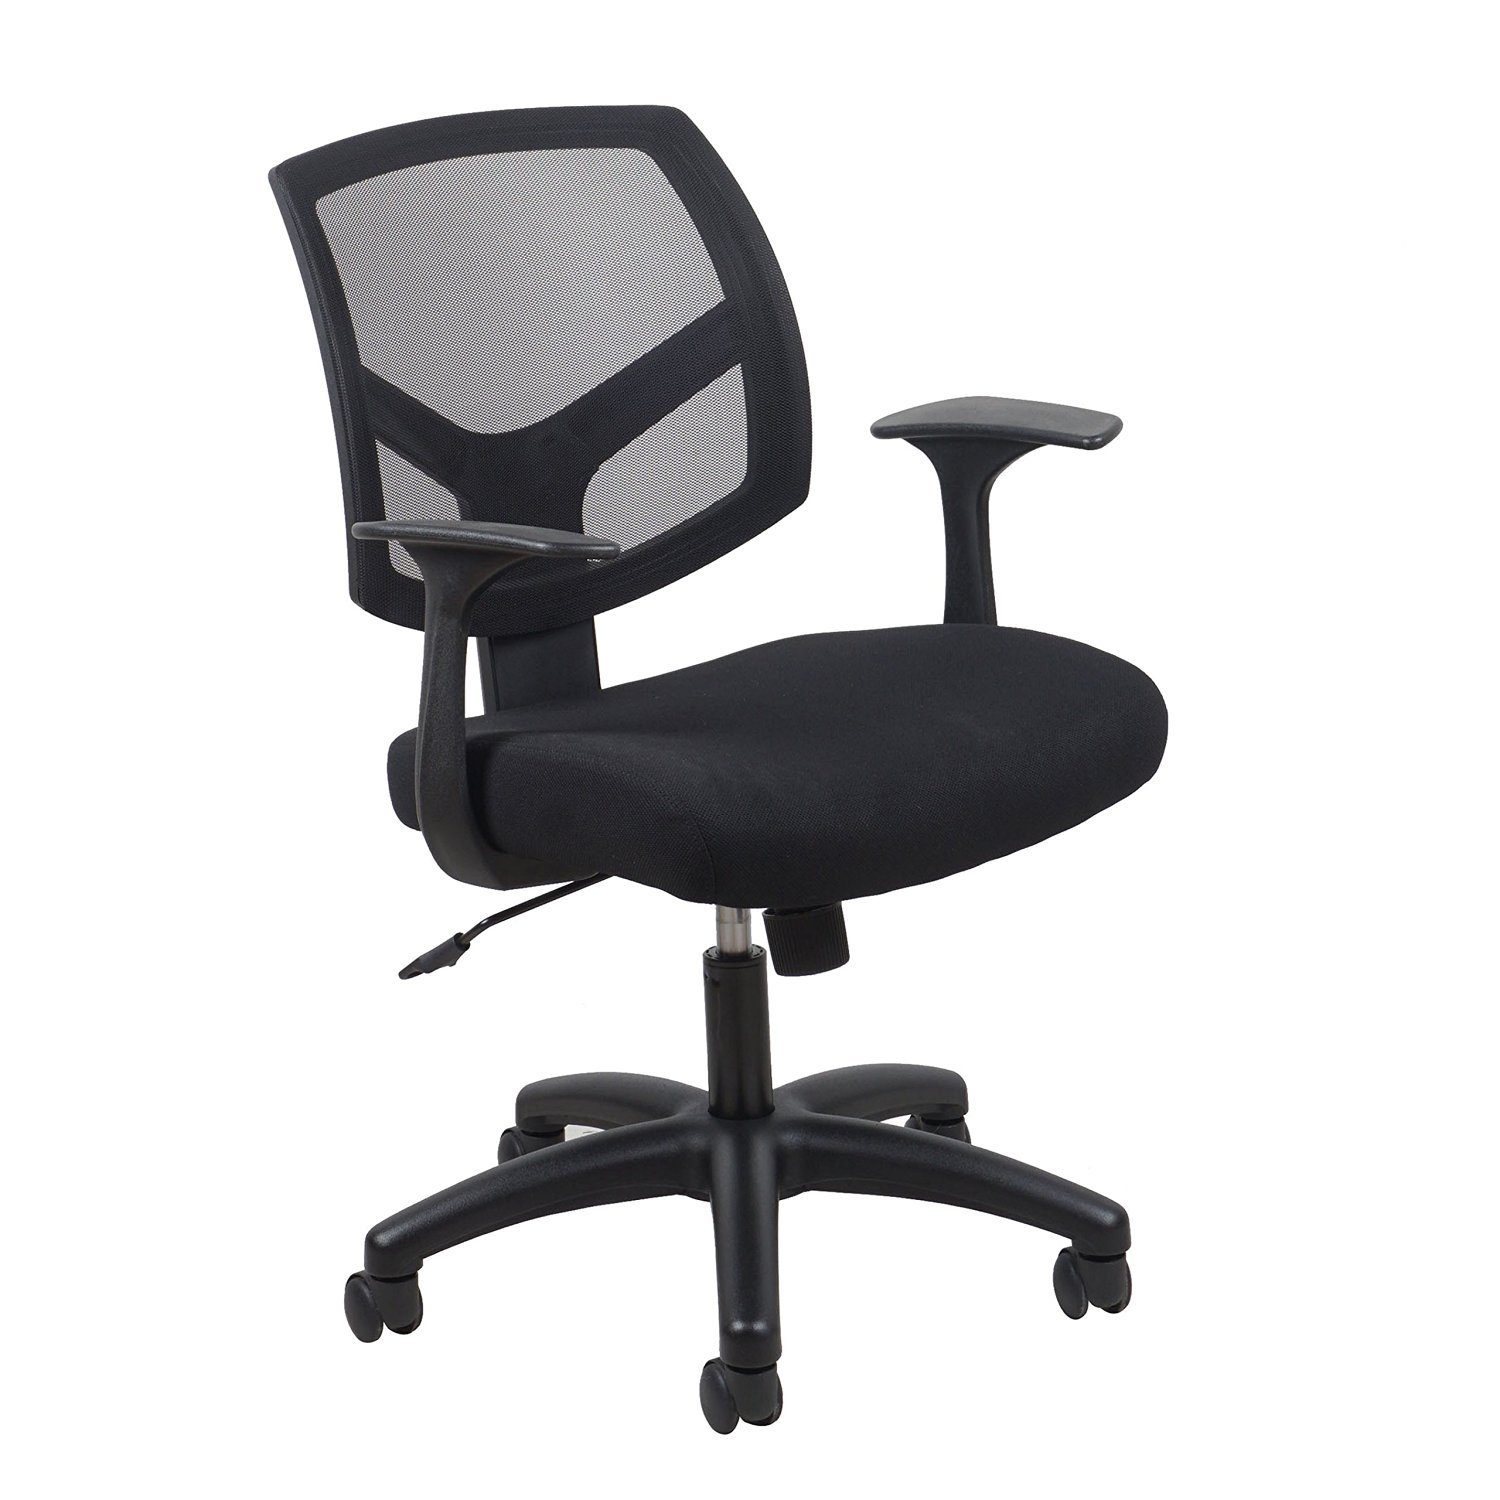 Essentials Swivel Mesh Back Task Chair with Arms - Ergonomic Computer/Office Chair (ESS-3030)